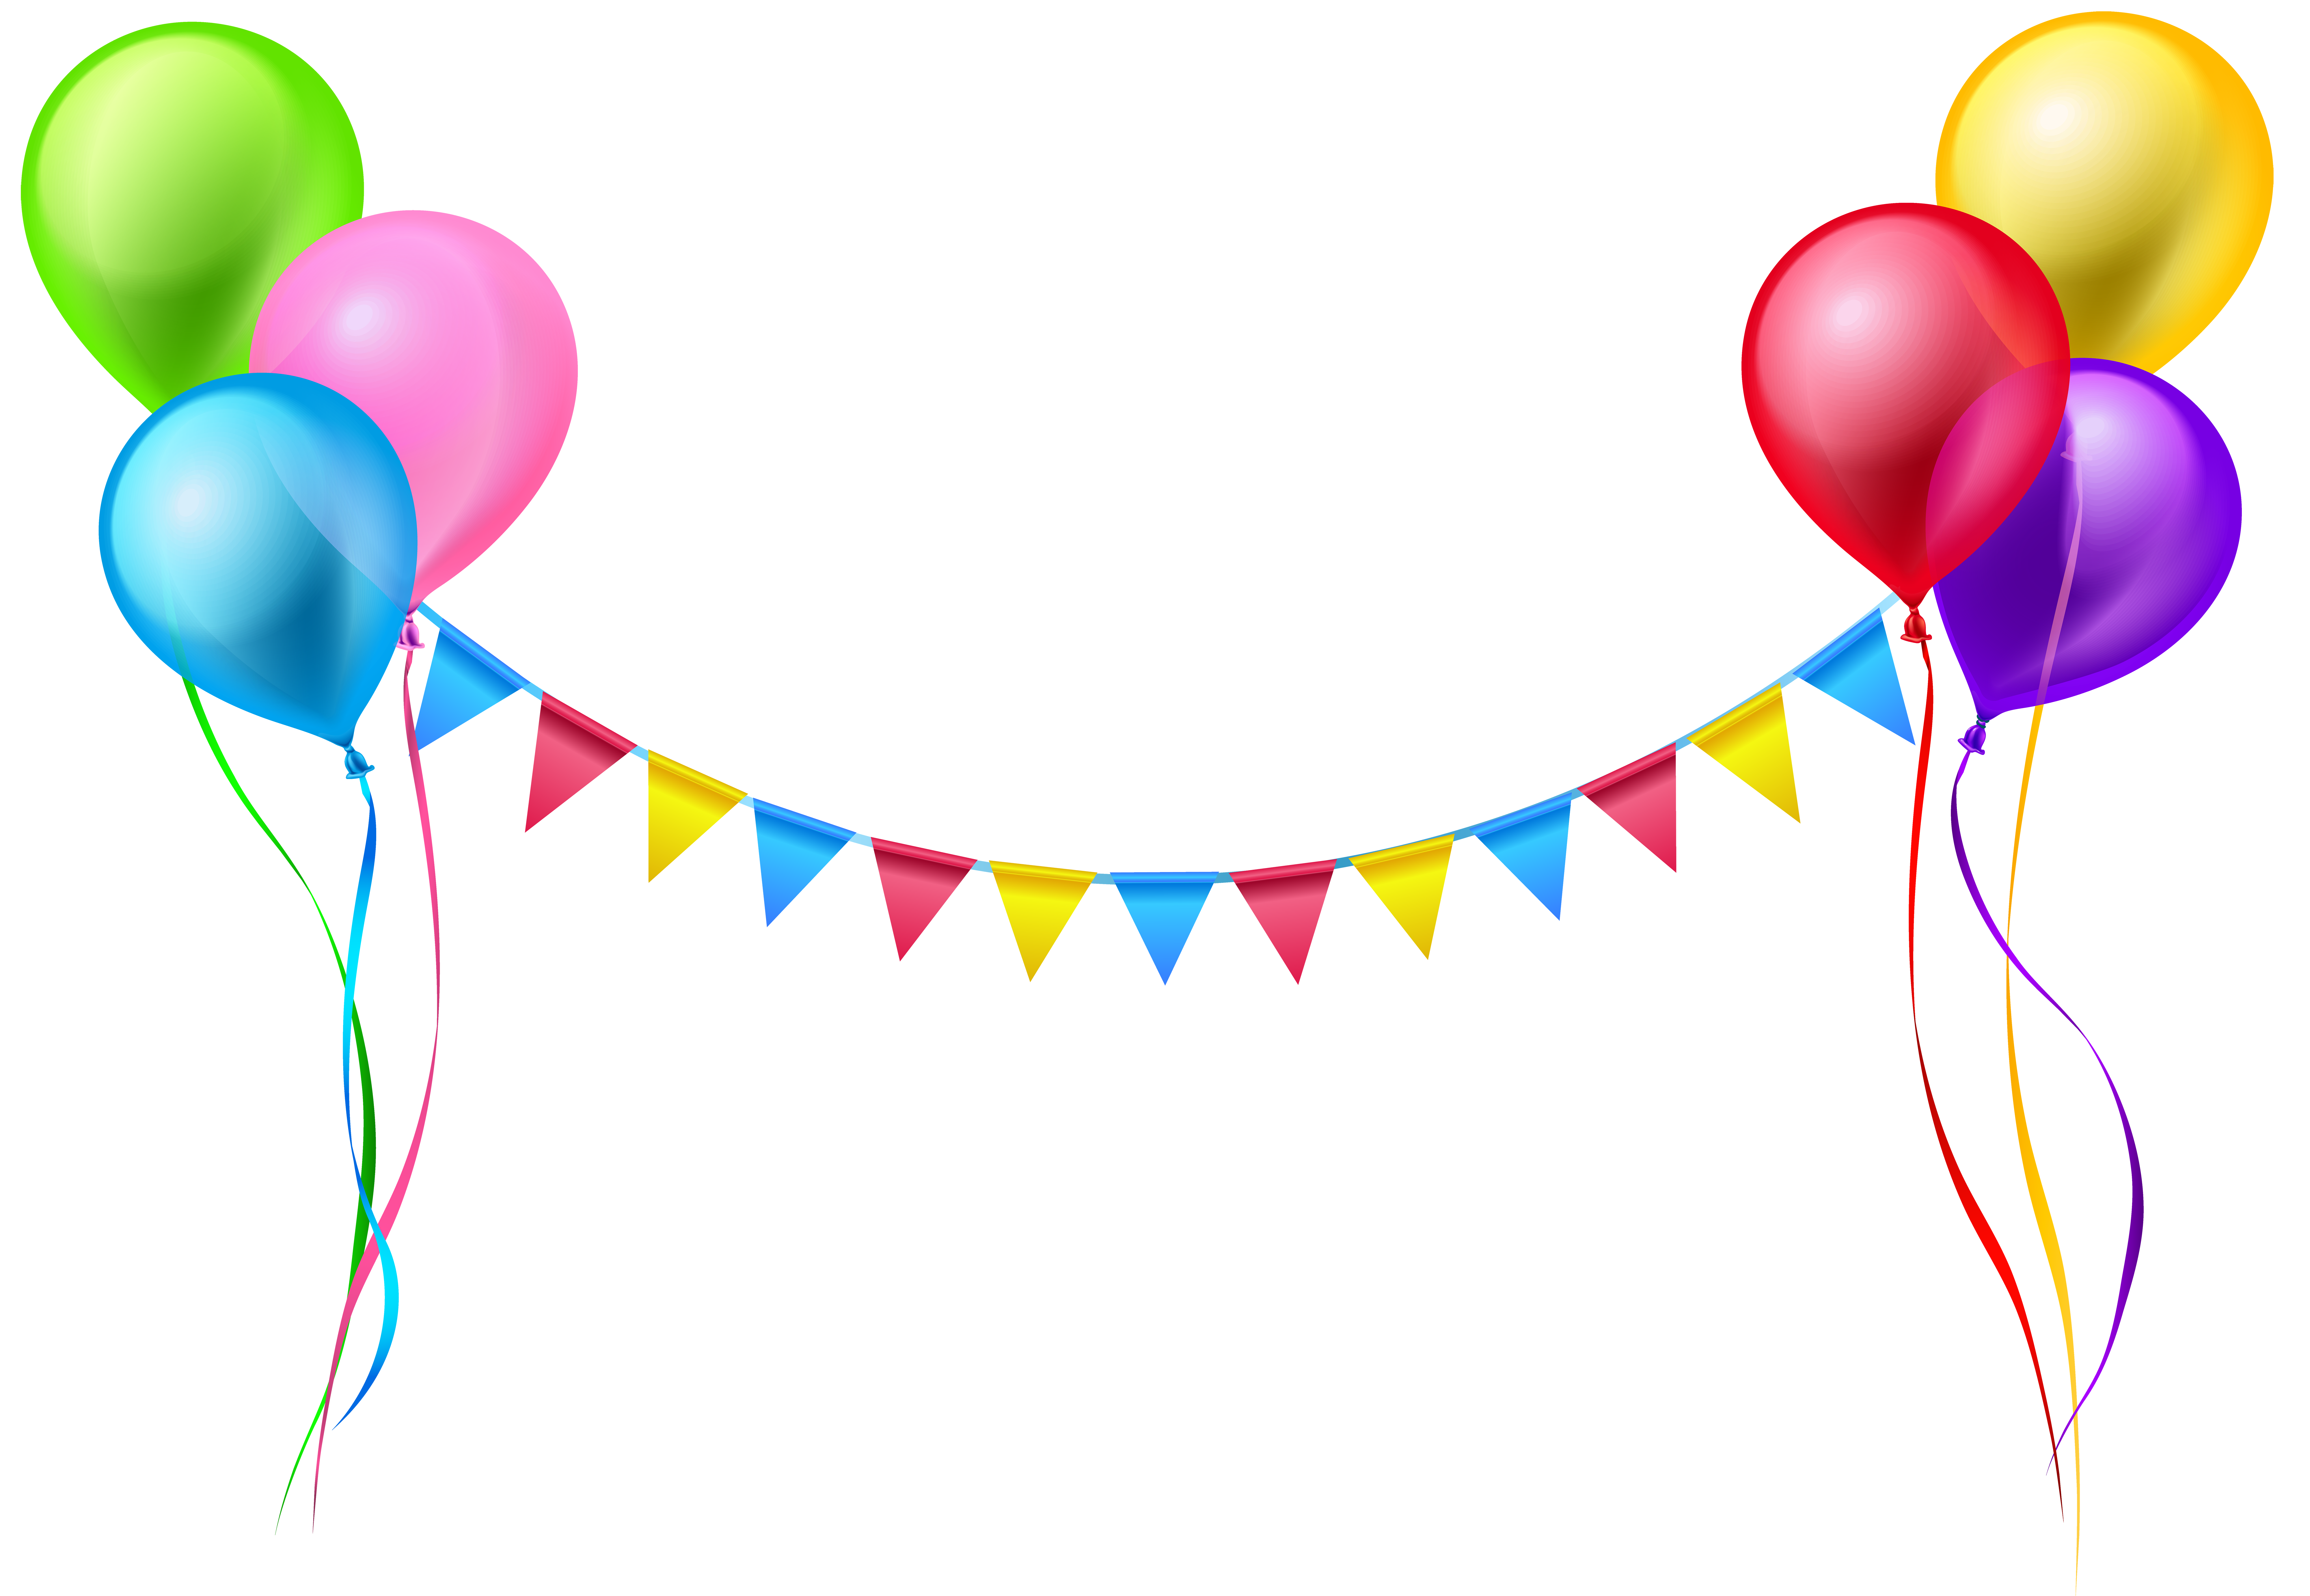 Balloons png. Streamer and clip art